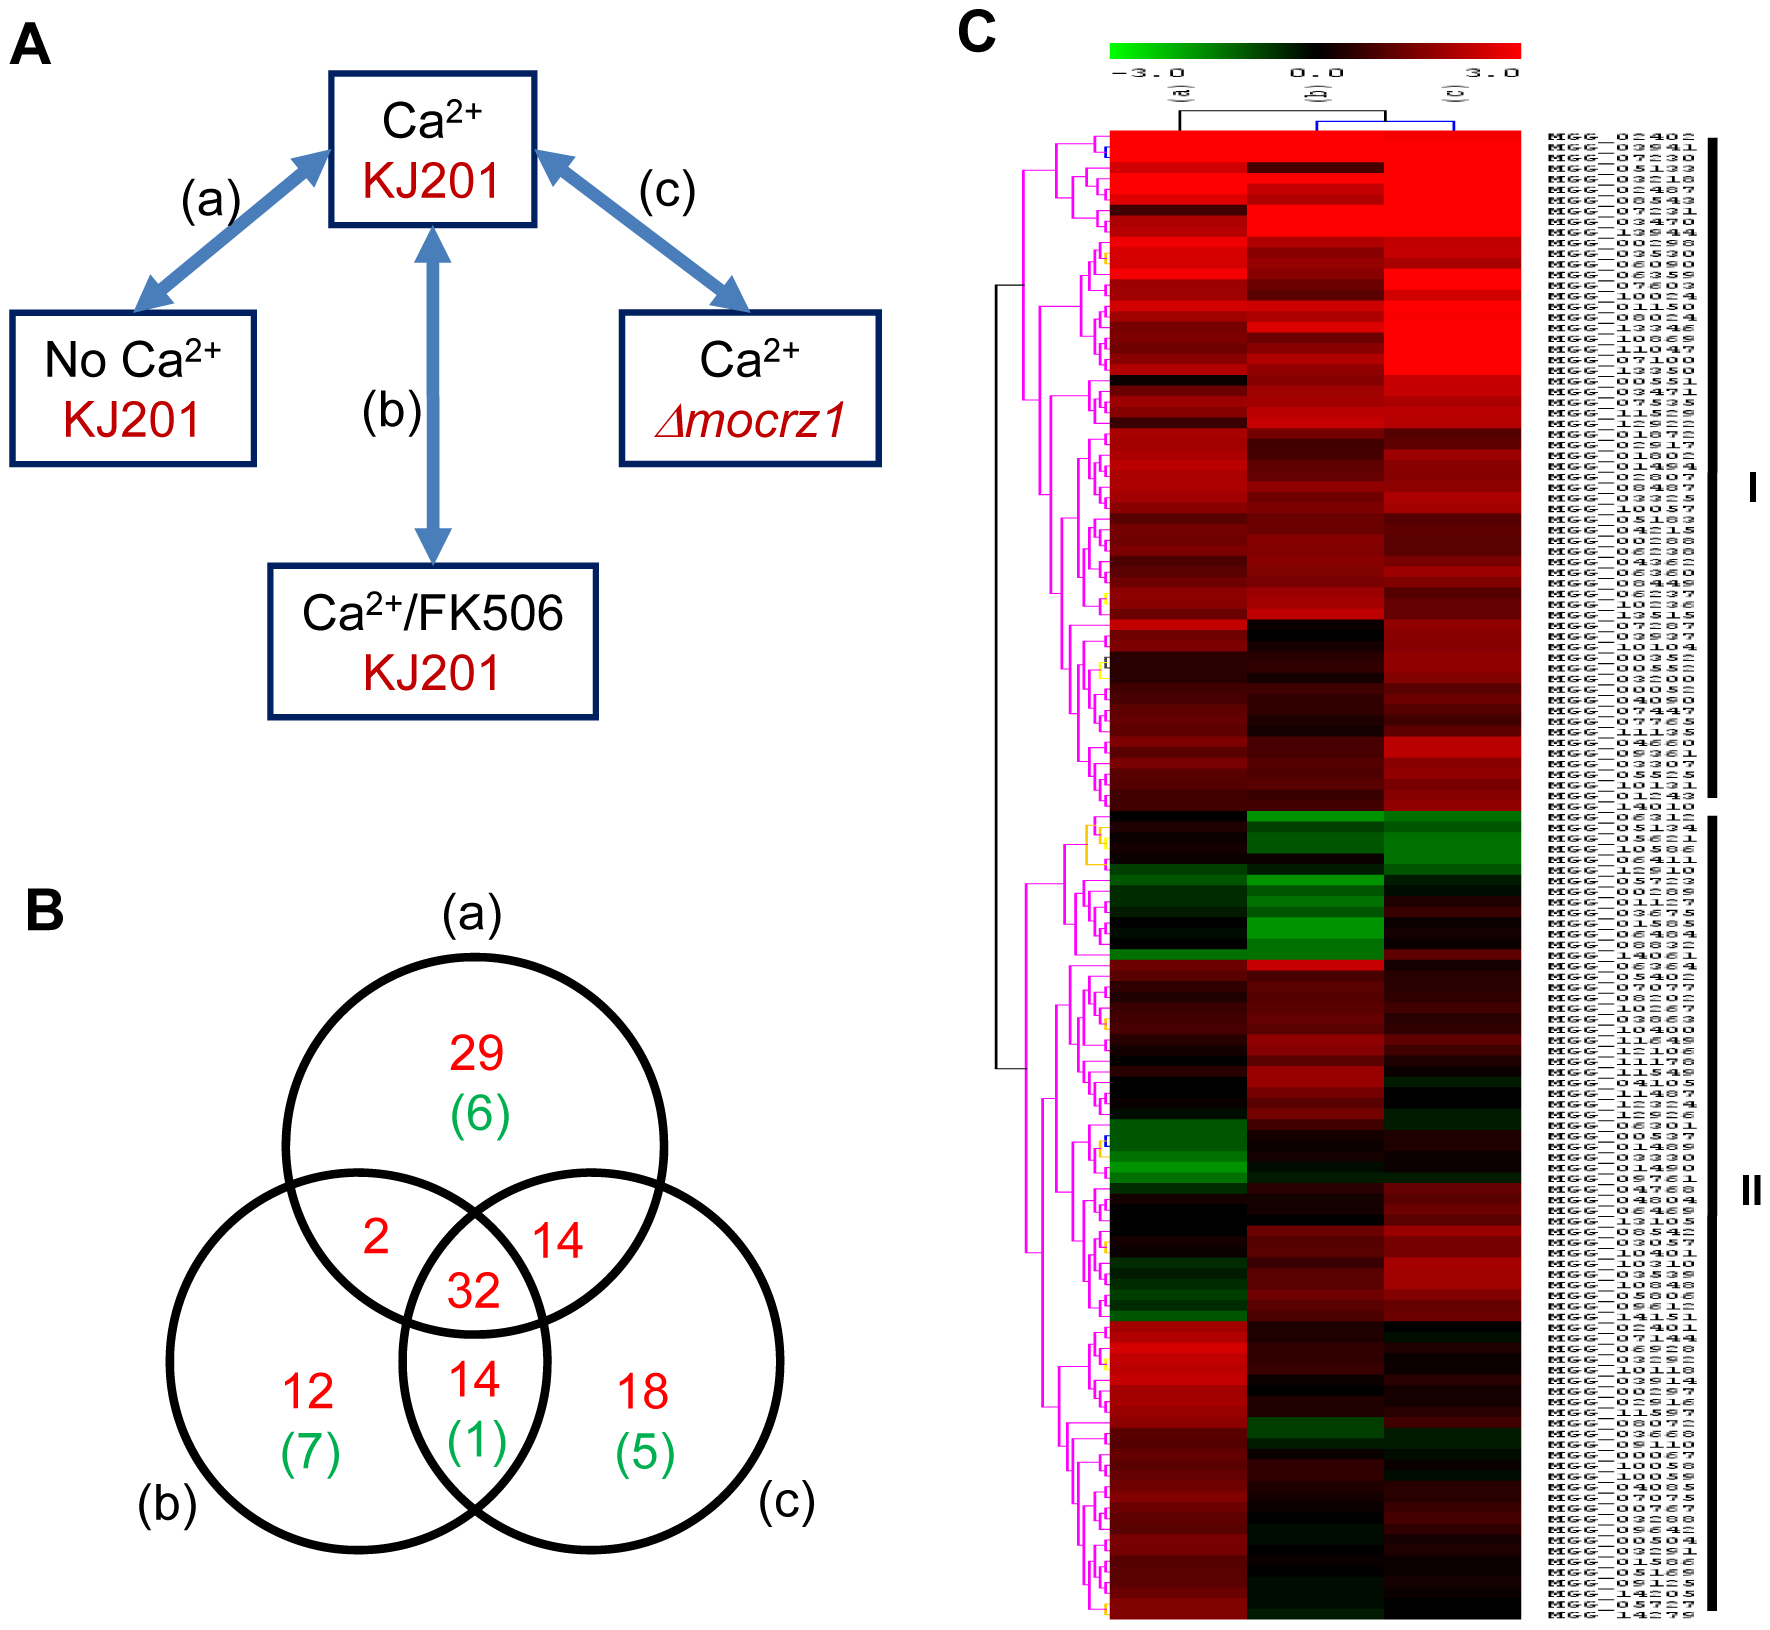 Expression dynamics of MoCRZ1 targets.